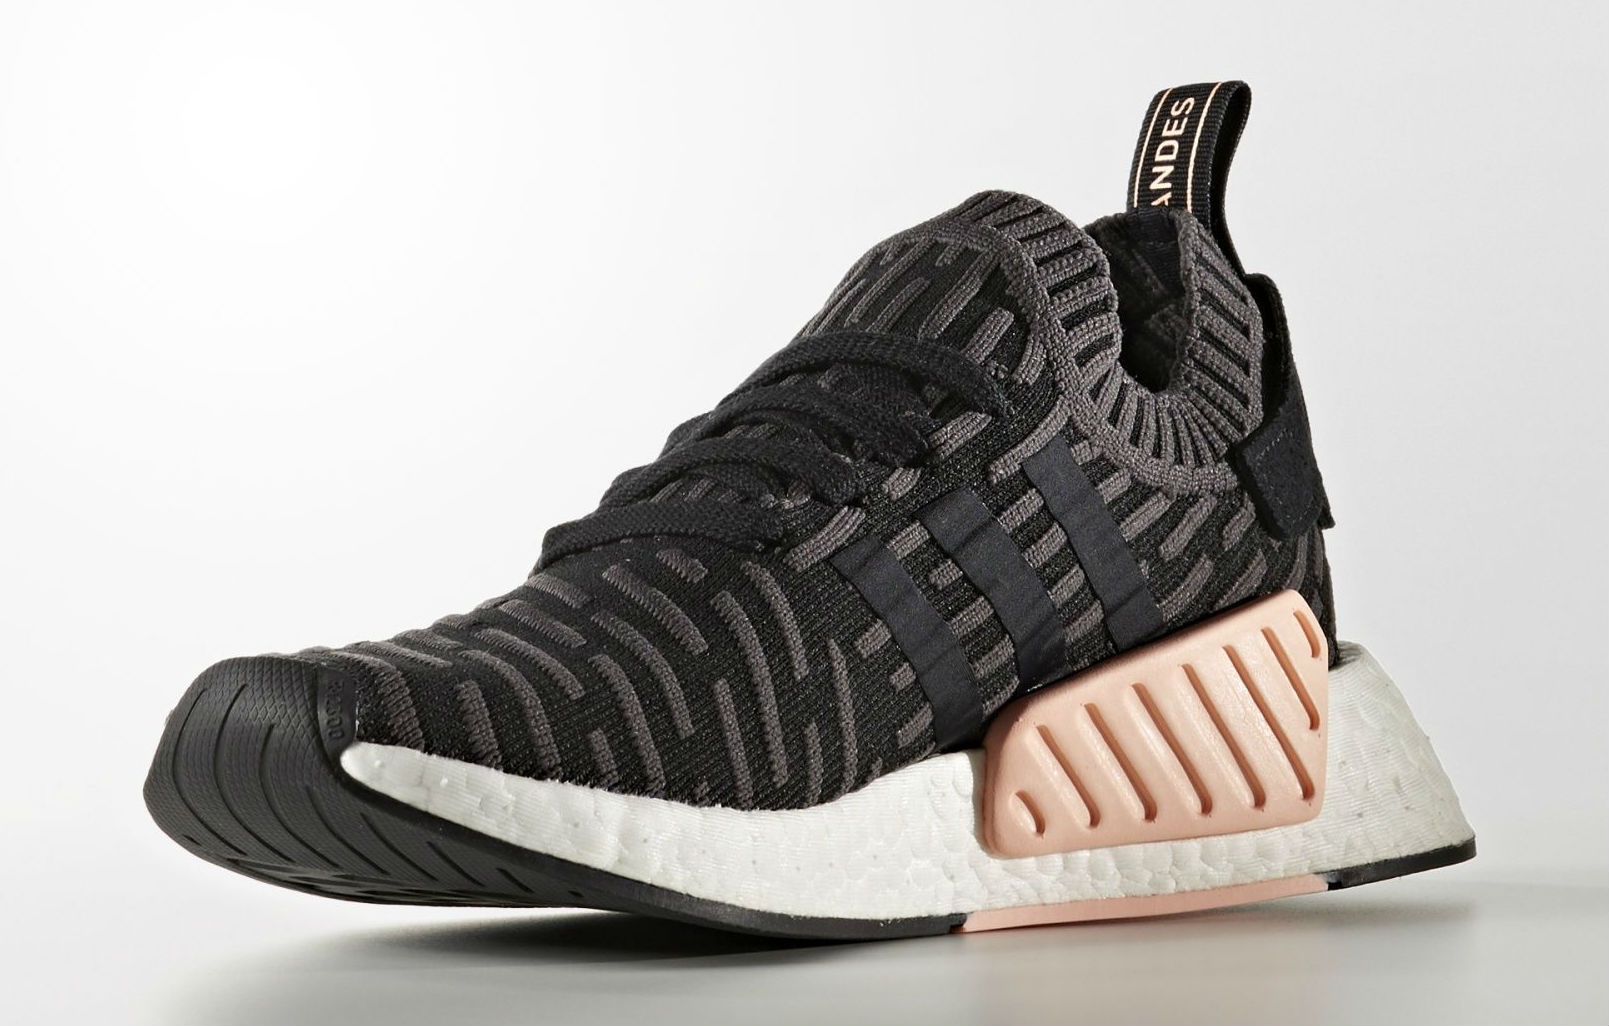 new style c7f08 608af adidas NMD R2 Primeknit | Sole Collector